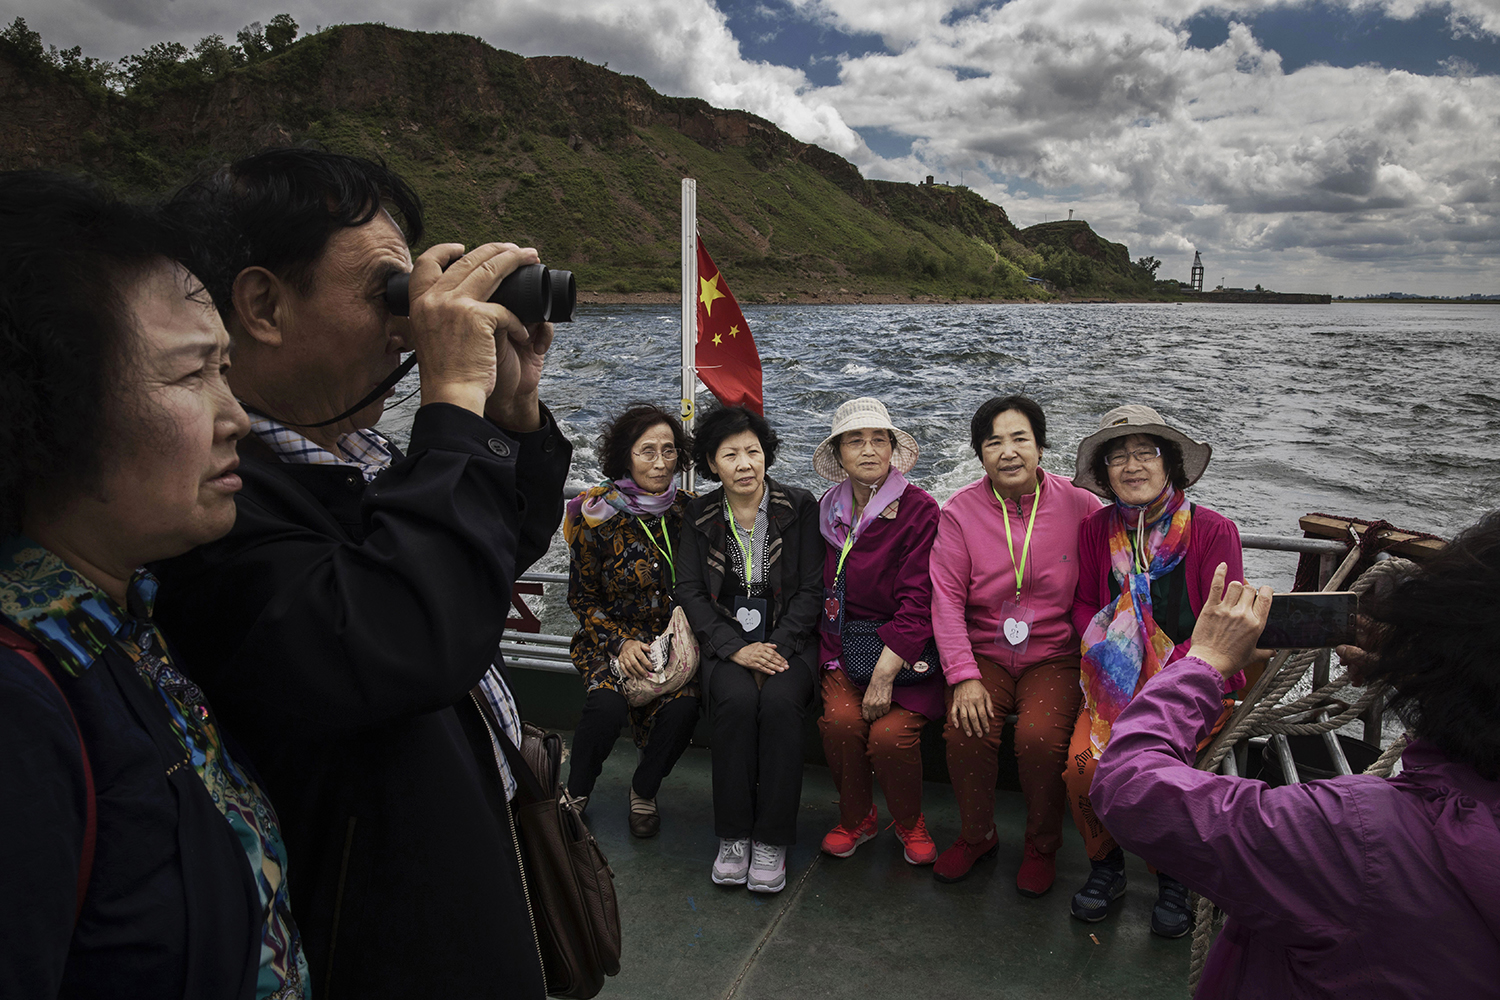 May 23, Chinese tourists ride in a boat on the Yalu river, which forms part of the border between China and North Korea. China has long been North Korea's most important ally and trading partner, but relations are increasingly strained by continued missile testing and provocations by the regime of Kim Jong-un. (Kevin Frayer/Getty Images)